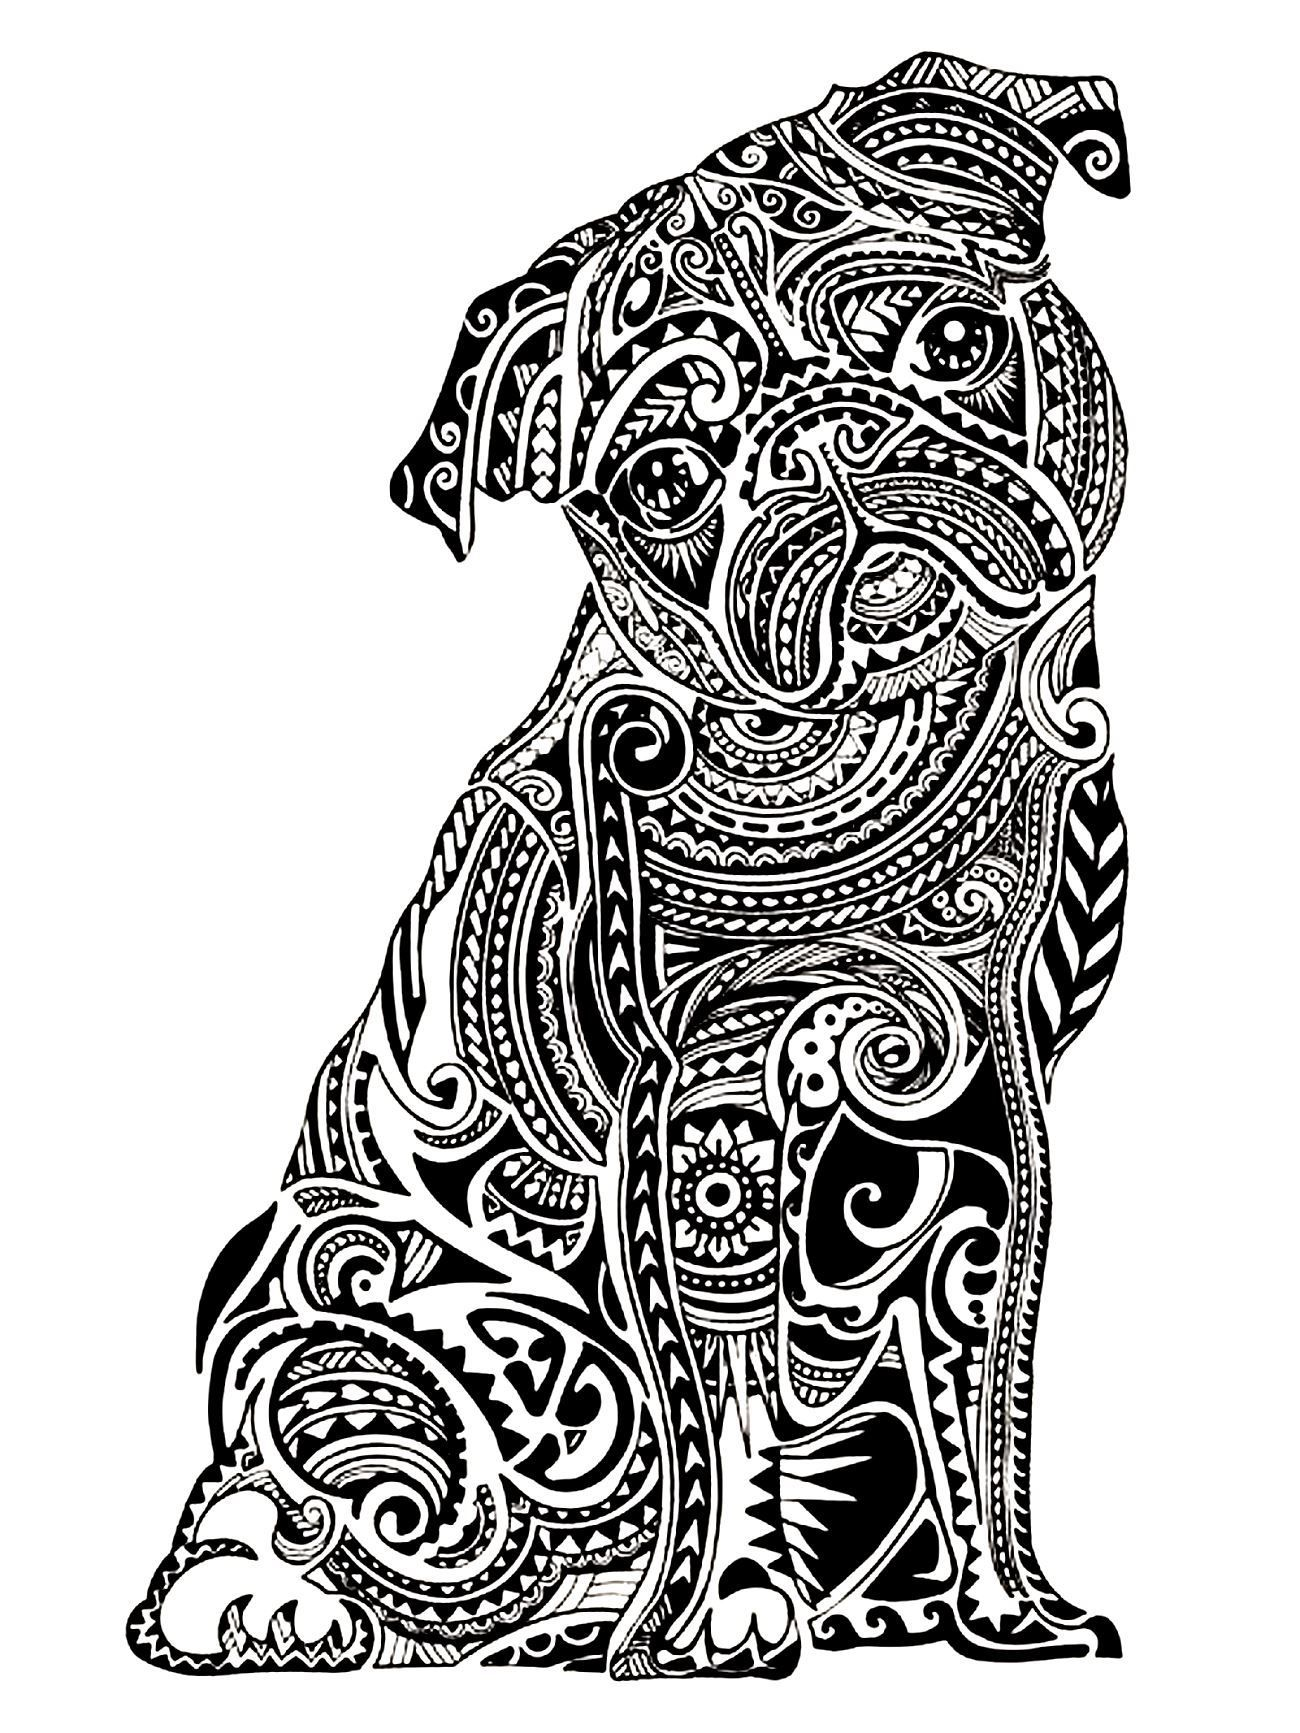 zentangle pug coloring page for adults